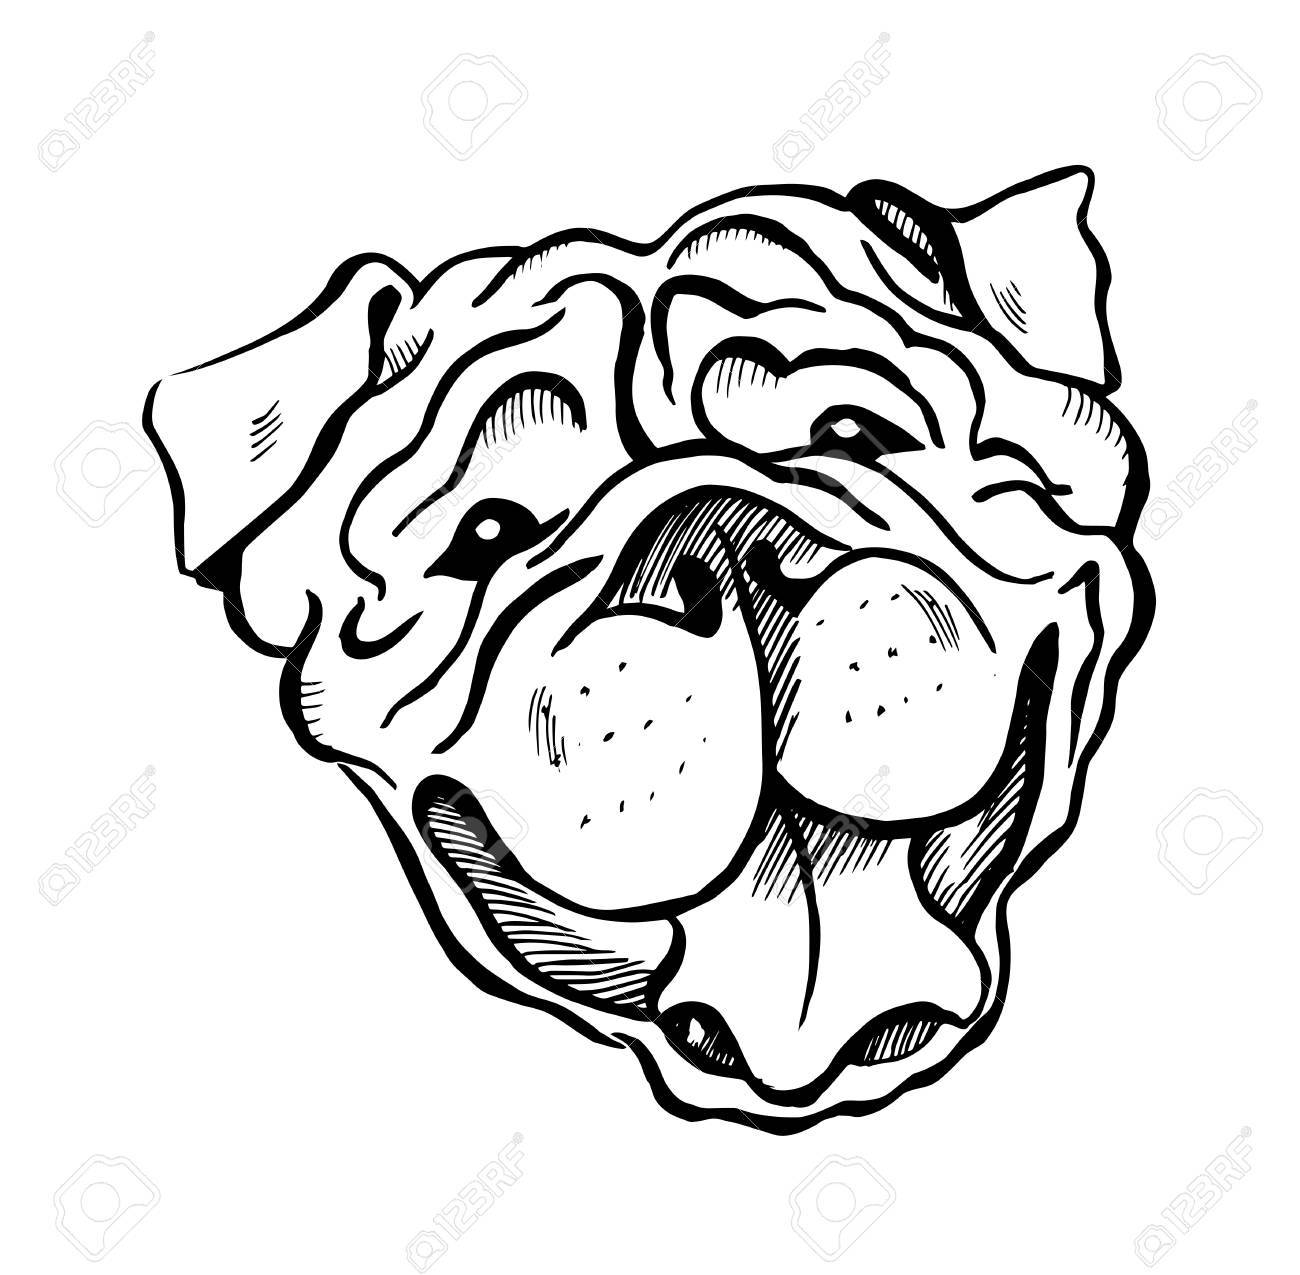 English Bulldog Drawing at GetDrawings.com | Free for personal use ...